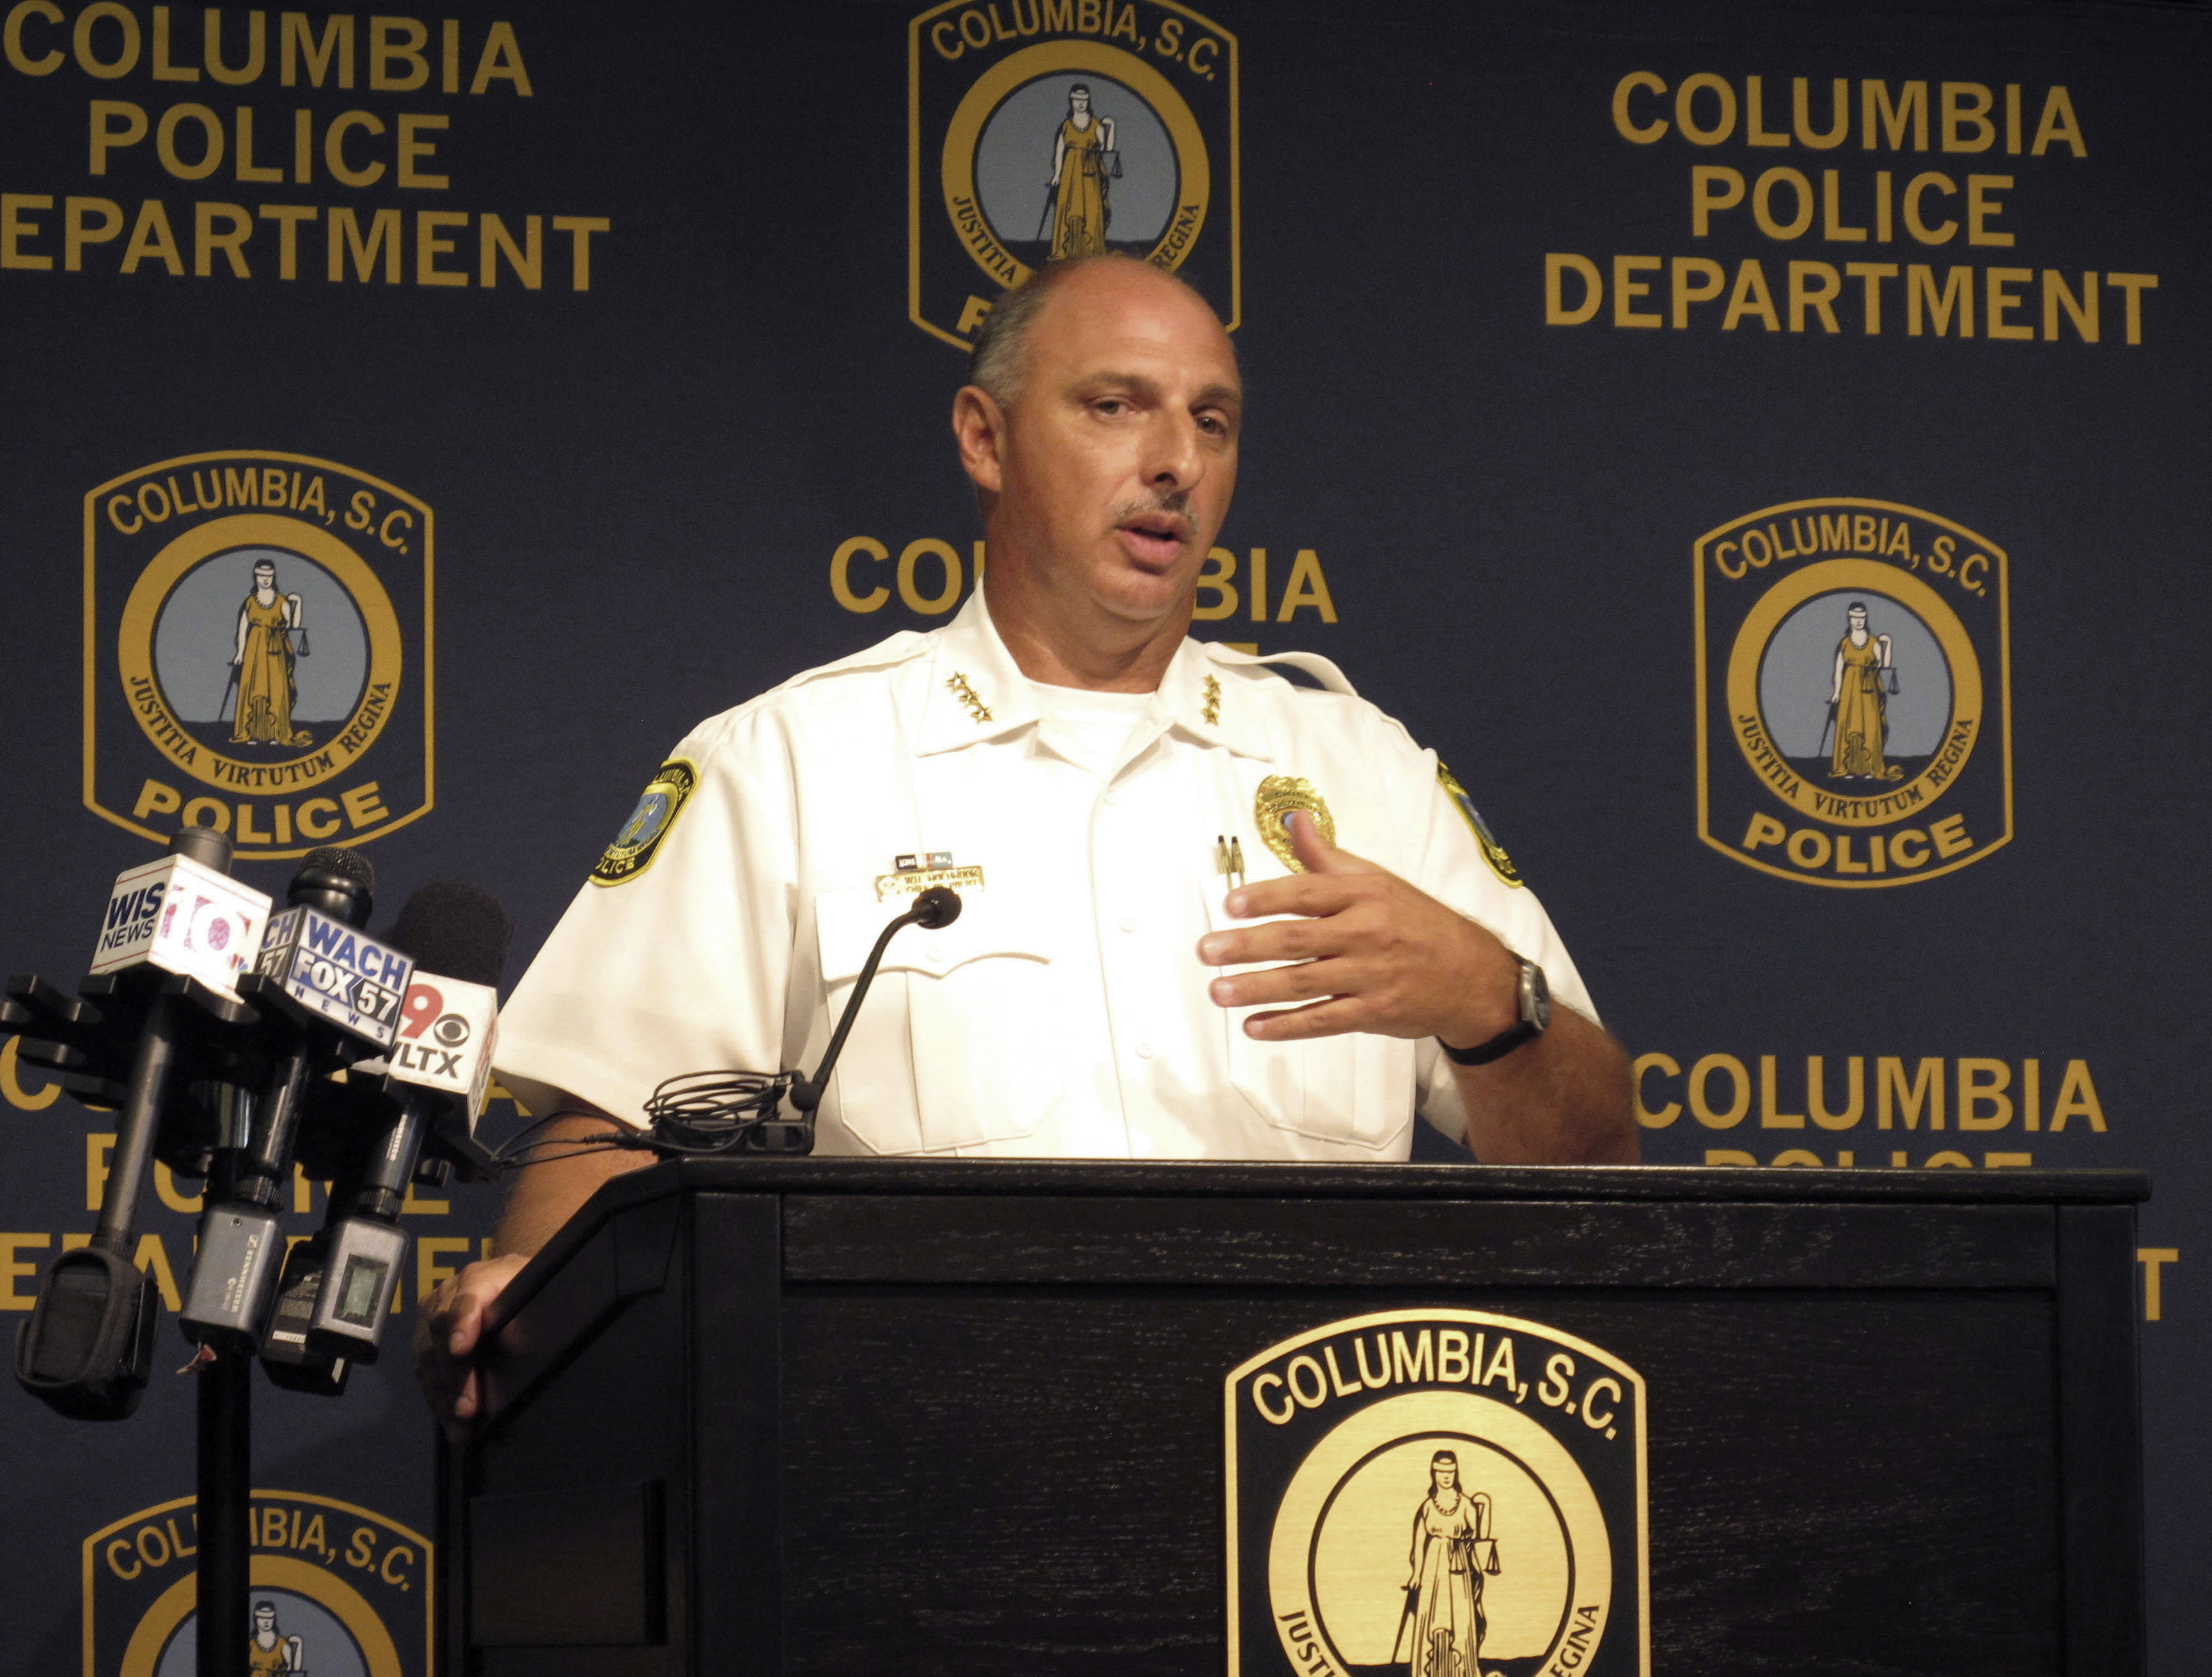 """Columbia Police Chief Skip Holbrook talks Thursday, Aug. 23, 2018, in Columbia, S.C., about an investigation into the heat-related death of police dog """"Turbo"""" in July. Holbrook said the handler, Master Police Officer David Hurt, violated police policy by leaving the dog alone for six hours and has been suspended without pay for five days. (AP Photo/Jeffrey Collins)"""